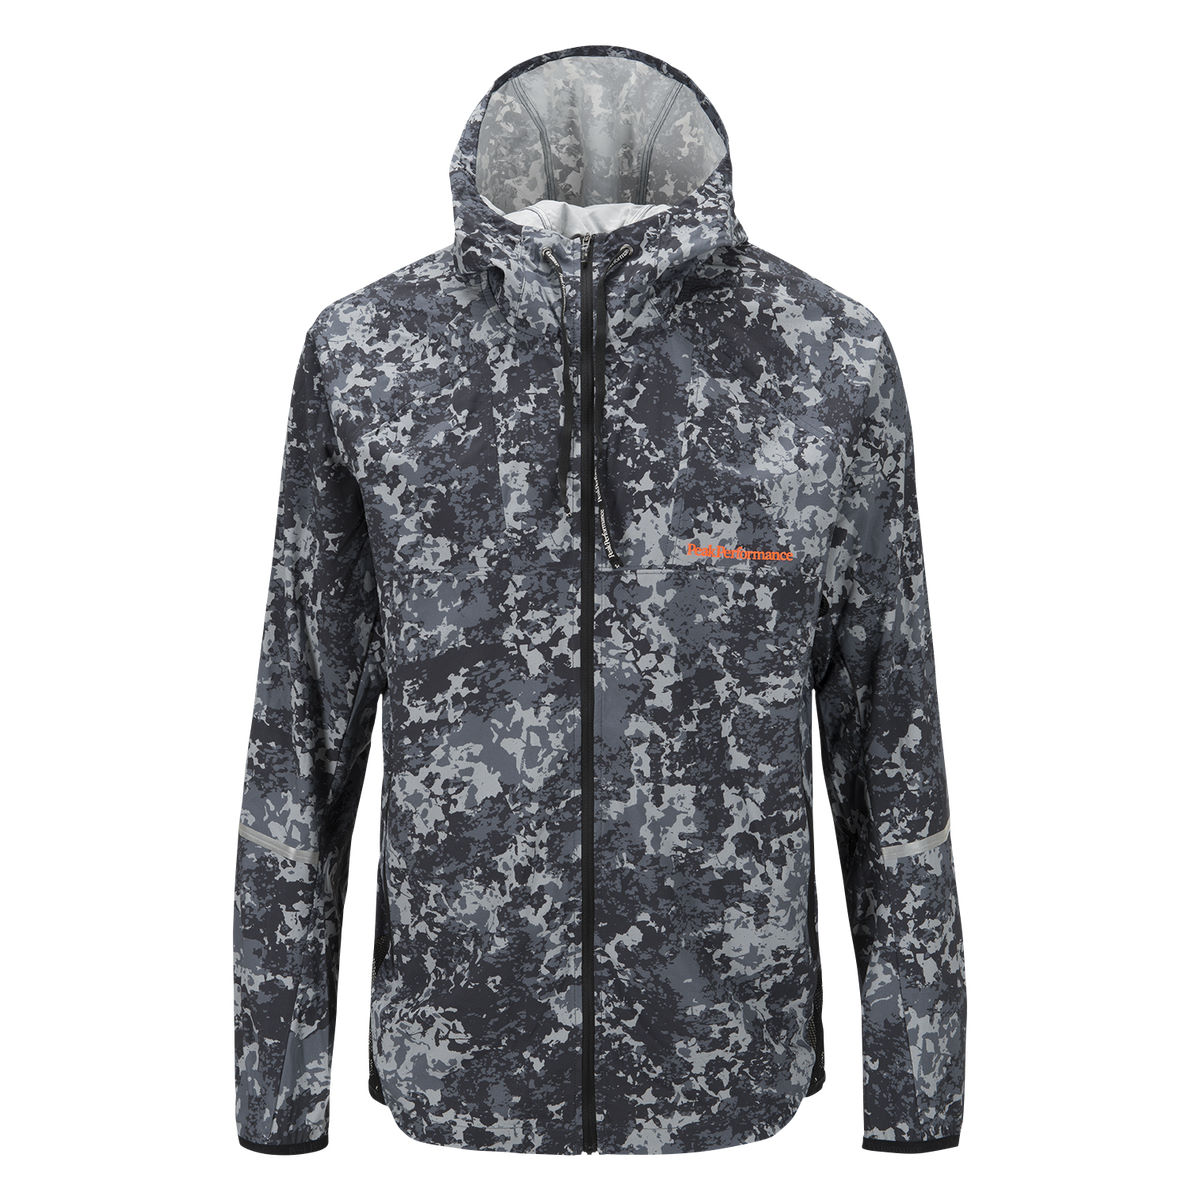 Peak Performance West 4th Street Printed Jacket - Medium Pattern